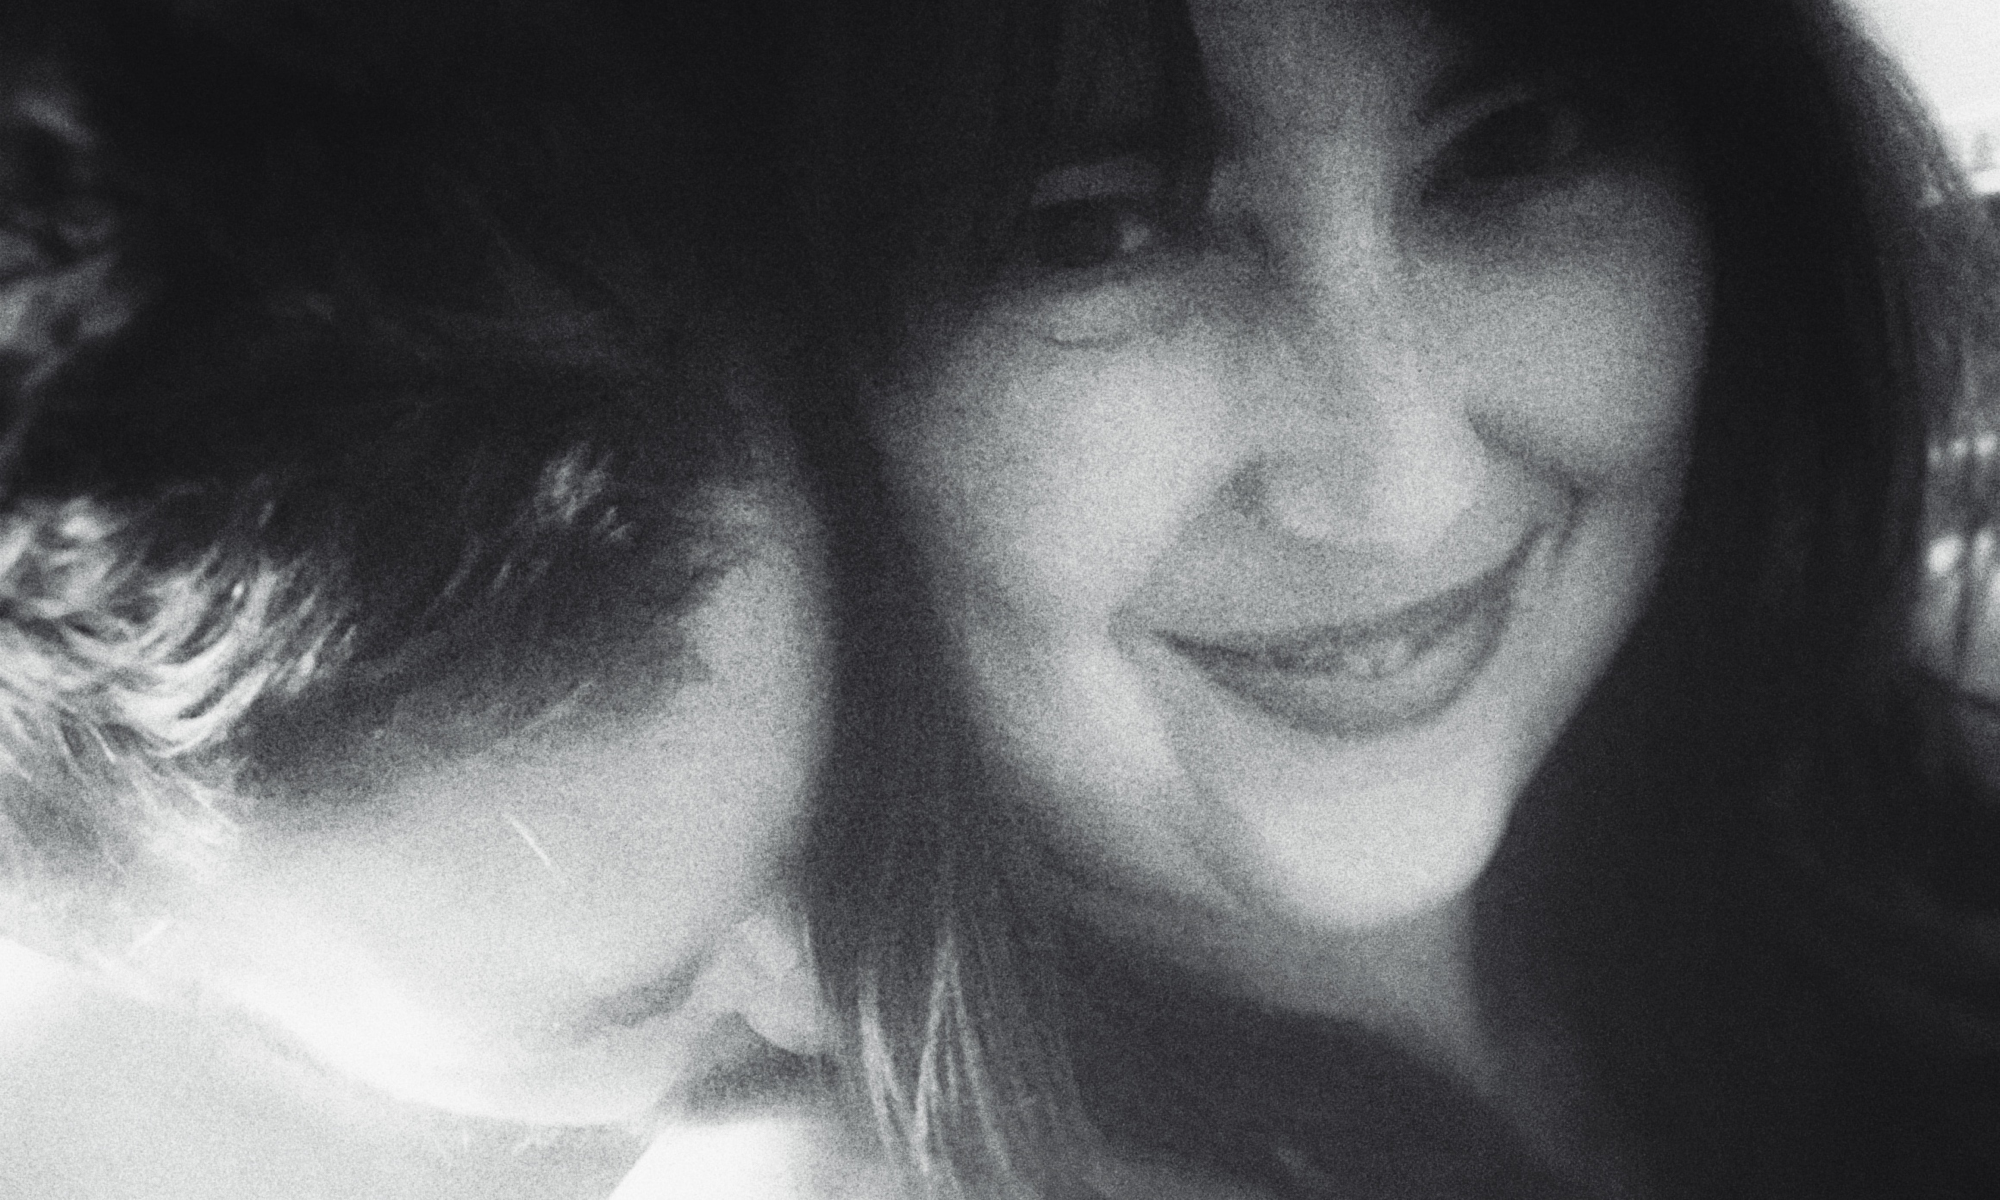 A black and white image of Pet nuzzling my neck as I smile.